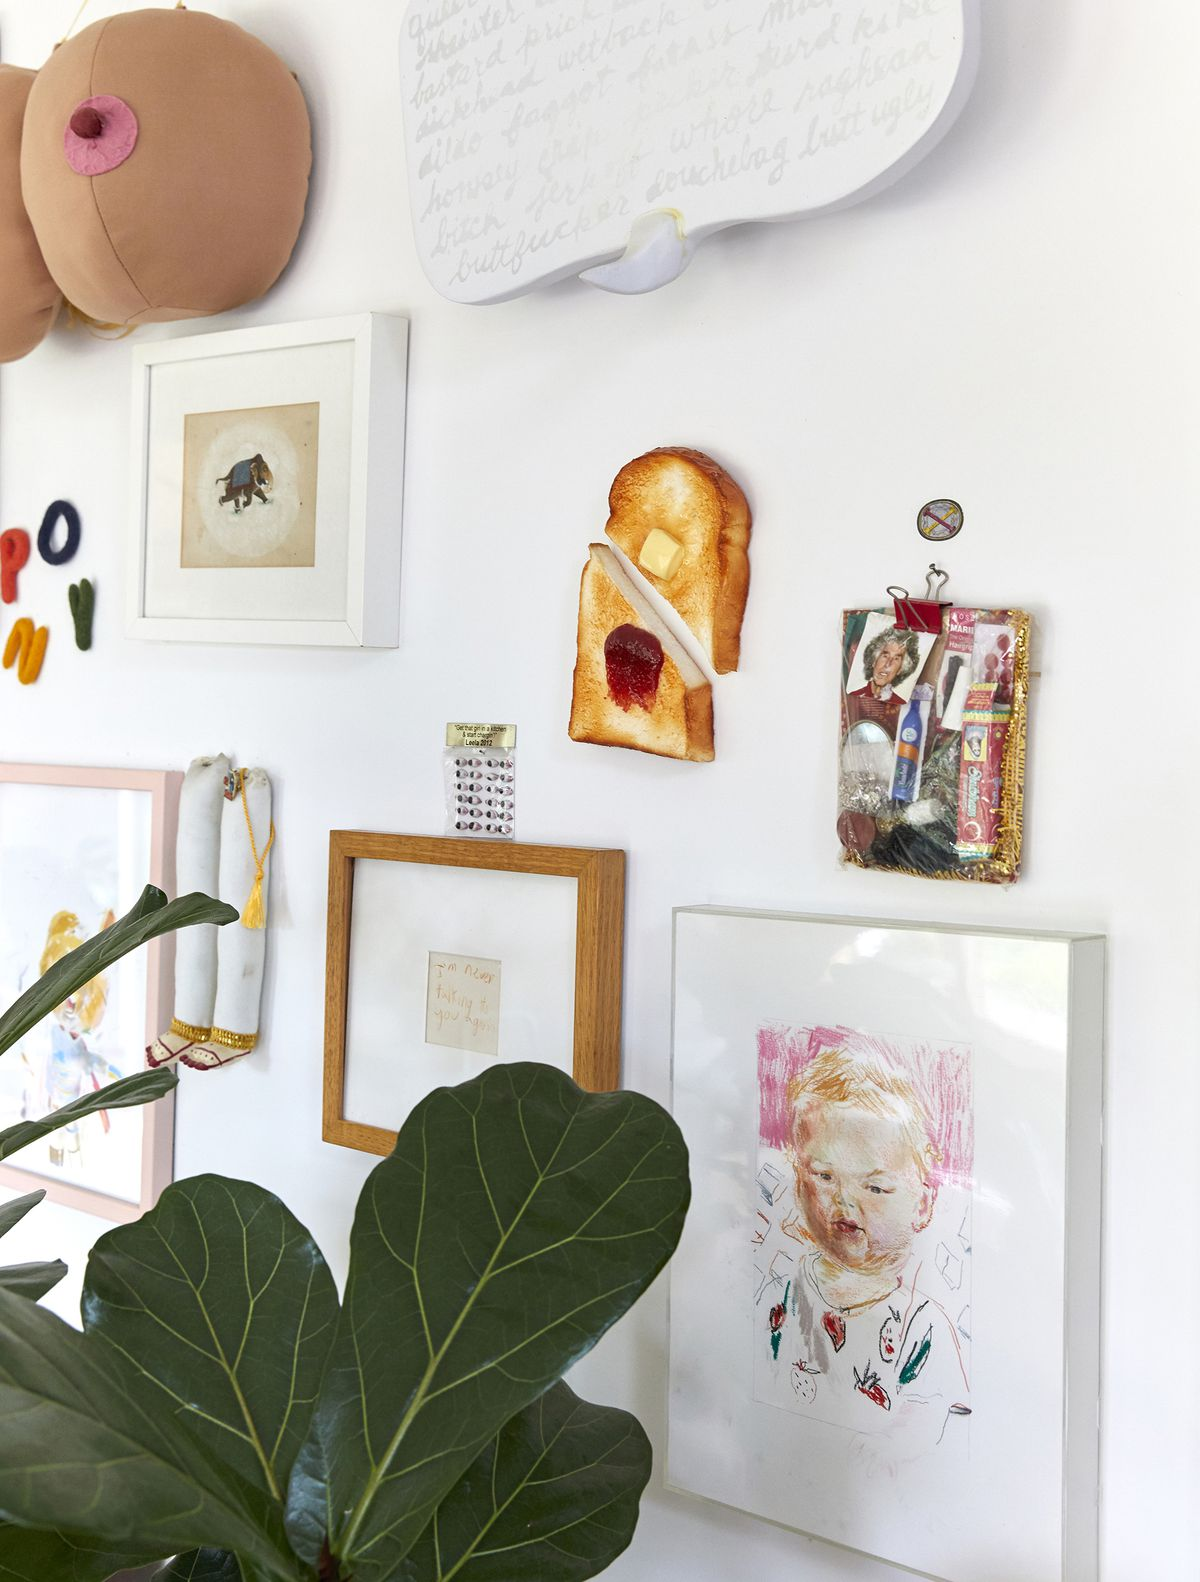 Various pieces of artwork on a painted white wall. There is a large houseplant sitting on the floor against the wall.